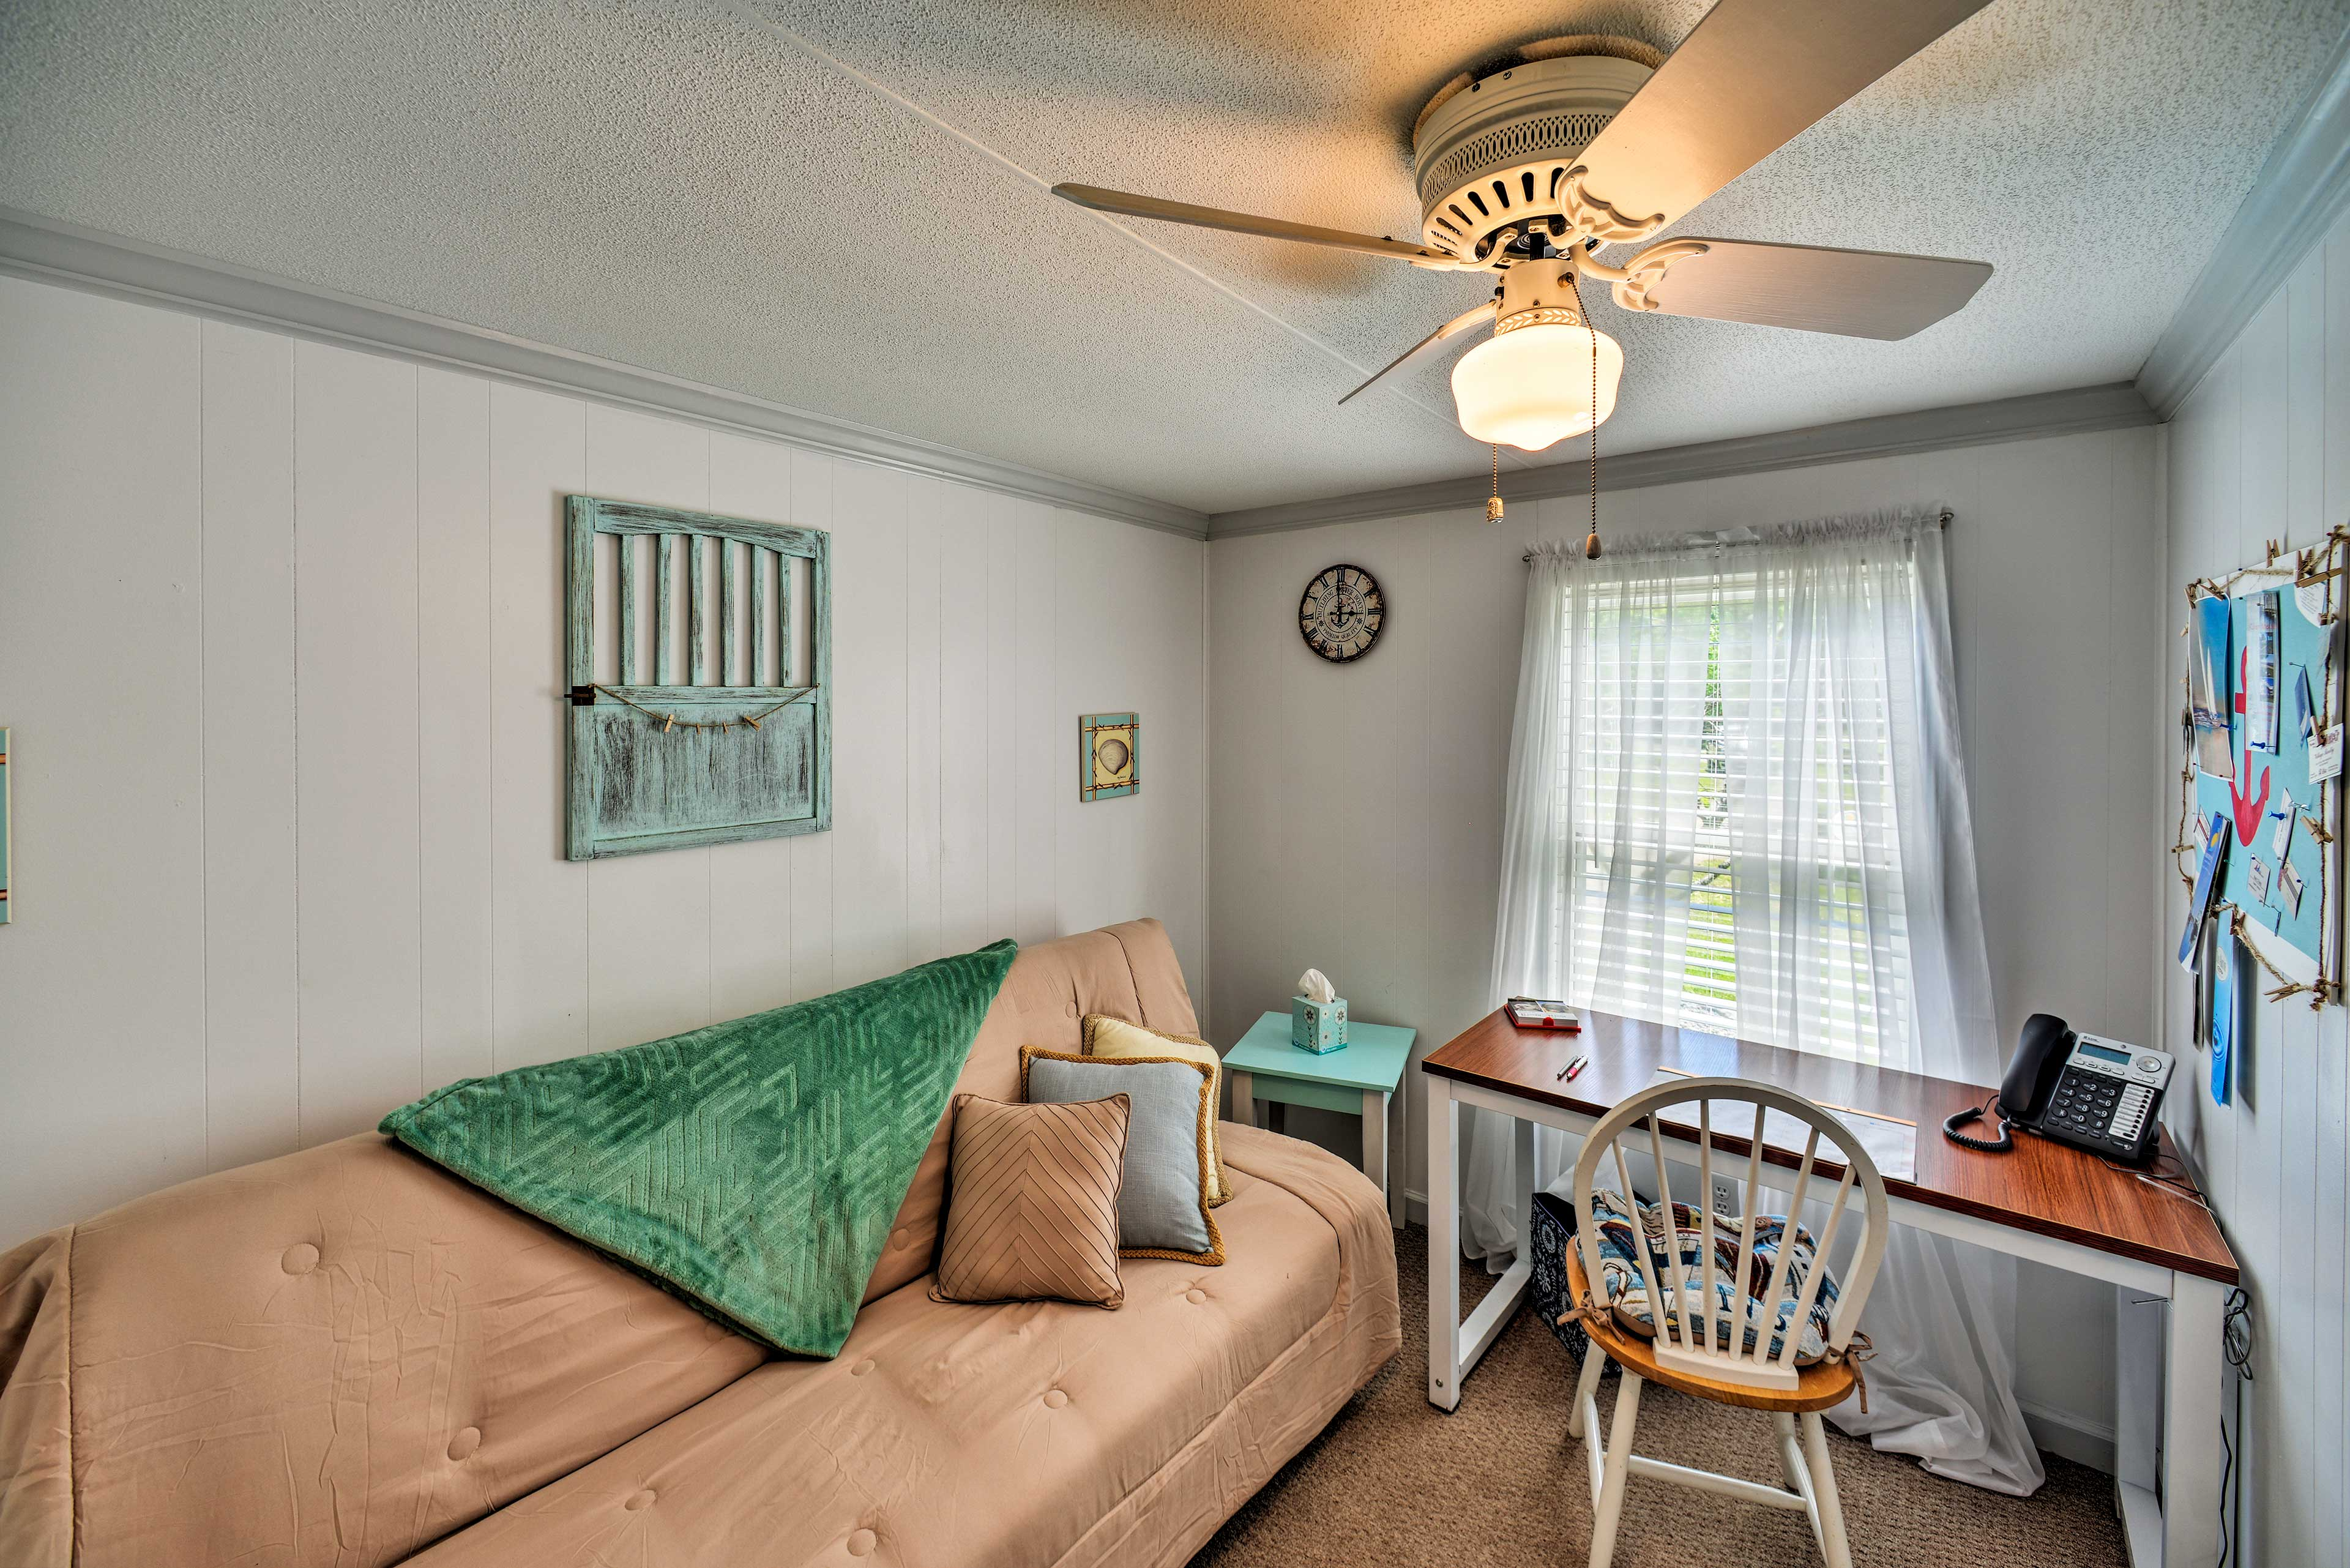 A futon in the third bedroom/office provides sleeping for 2.